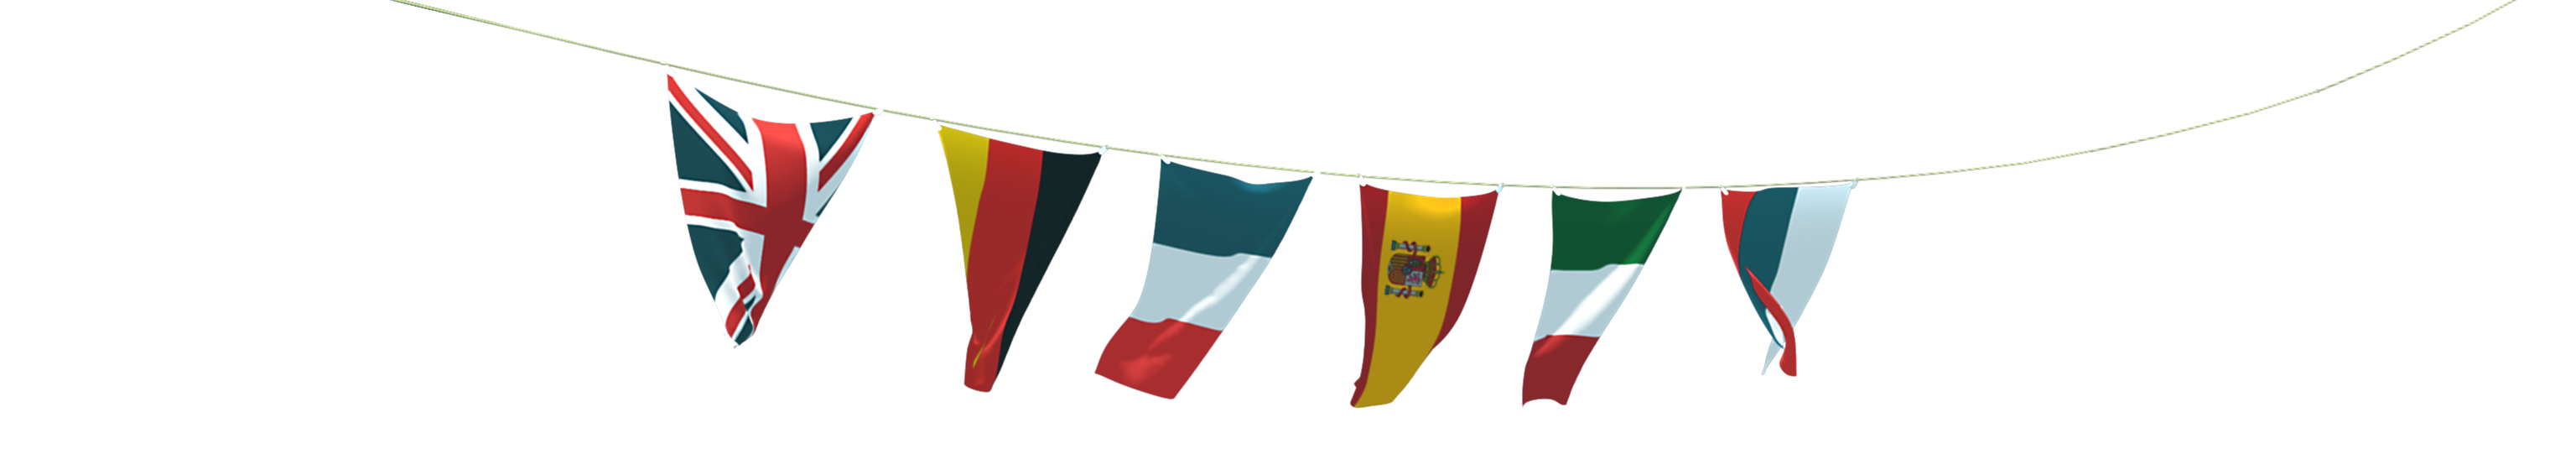 Flags_LAY_v002